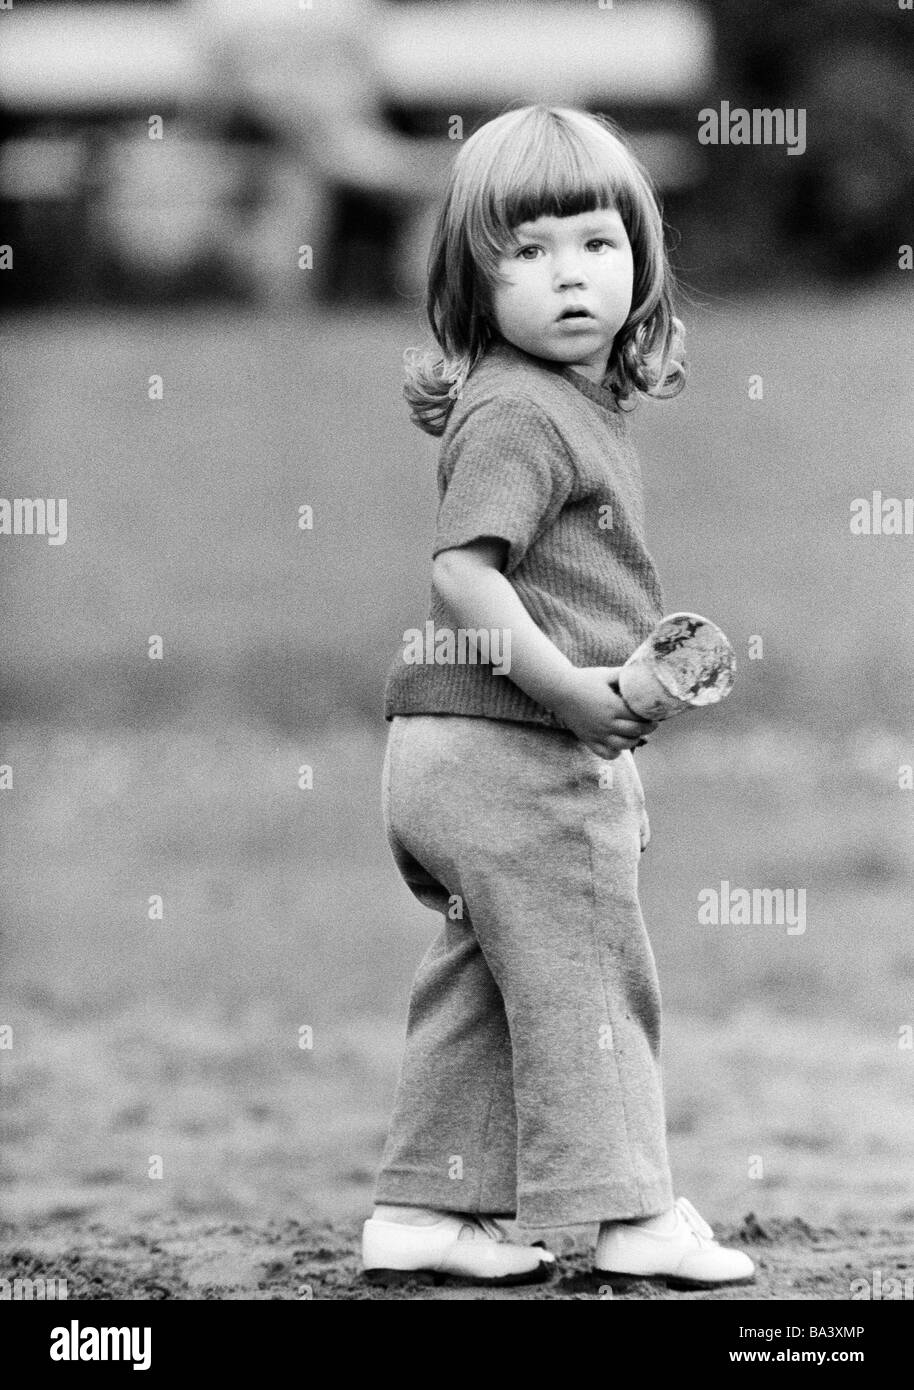 Seventies, black and white photo, people, children, little girl, aged 2 to 3 years Stock Photo